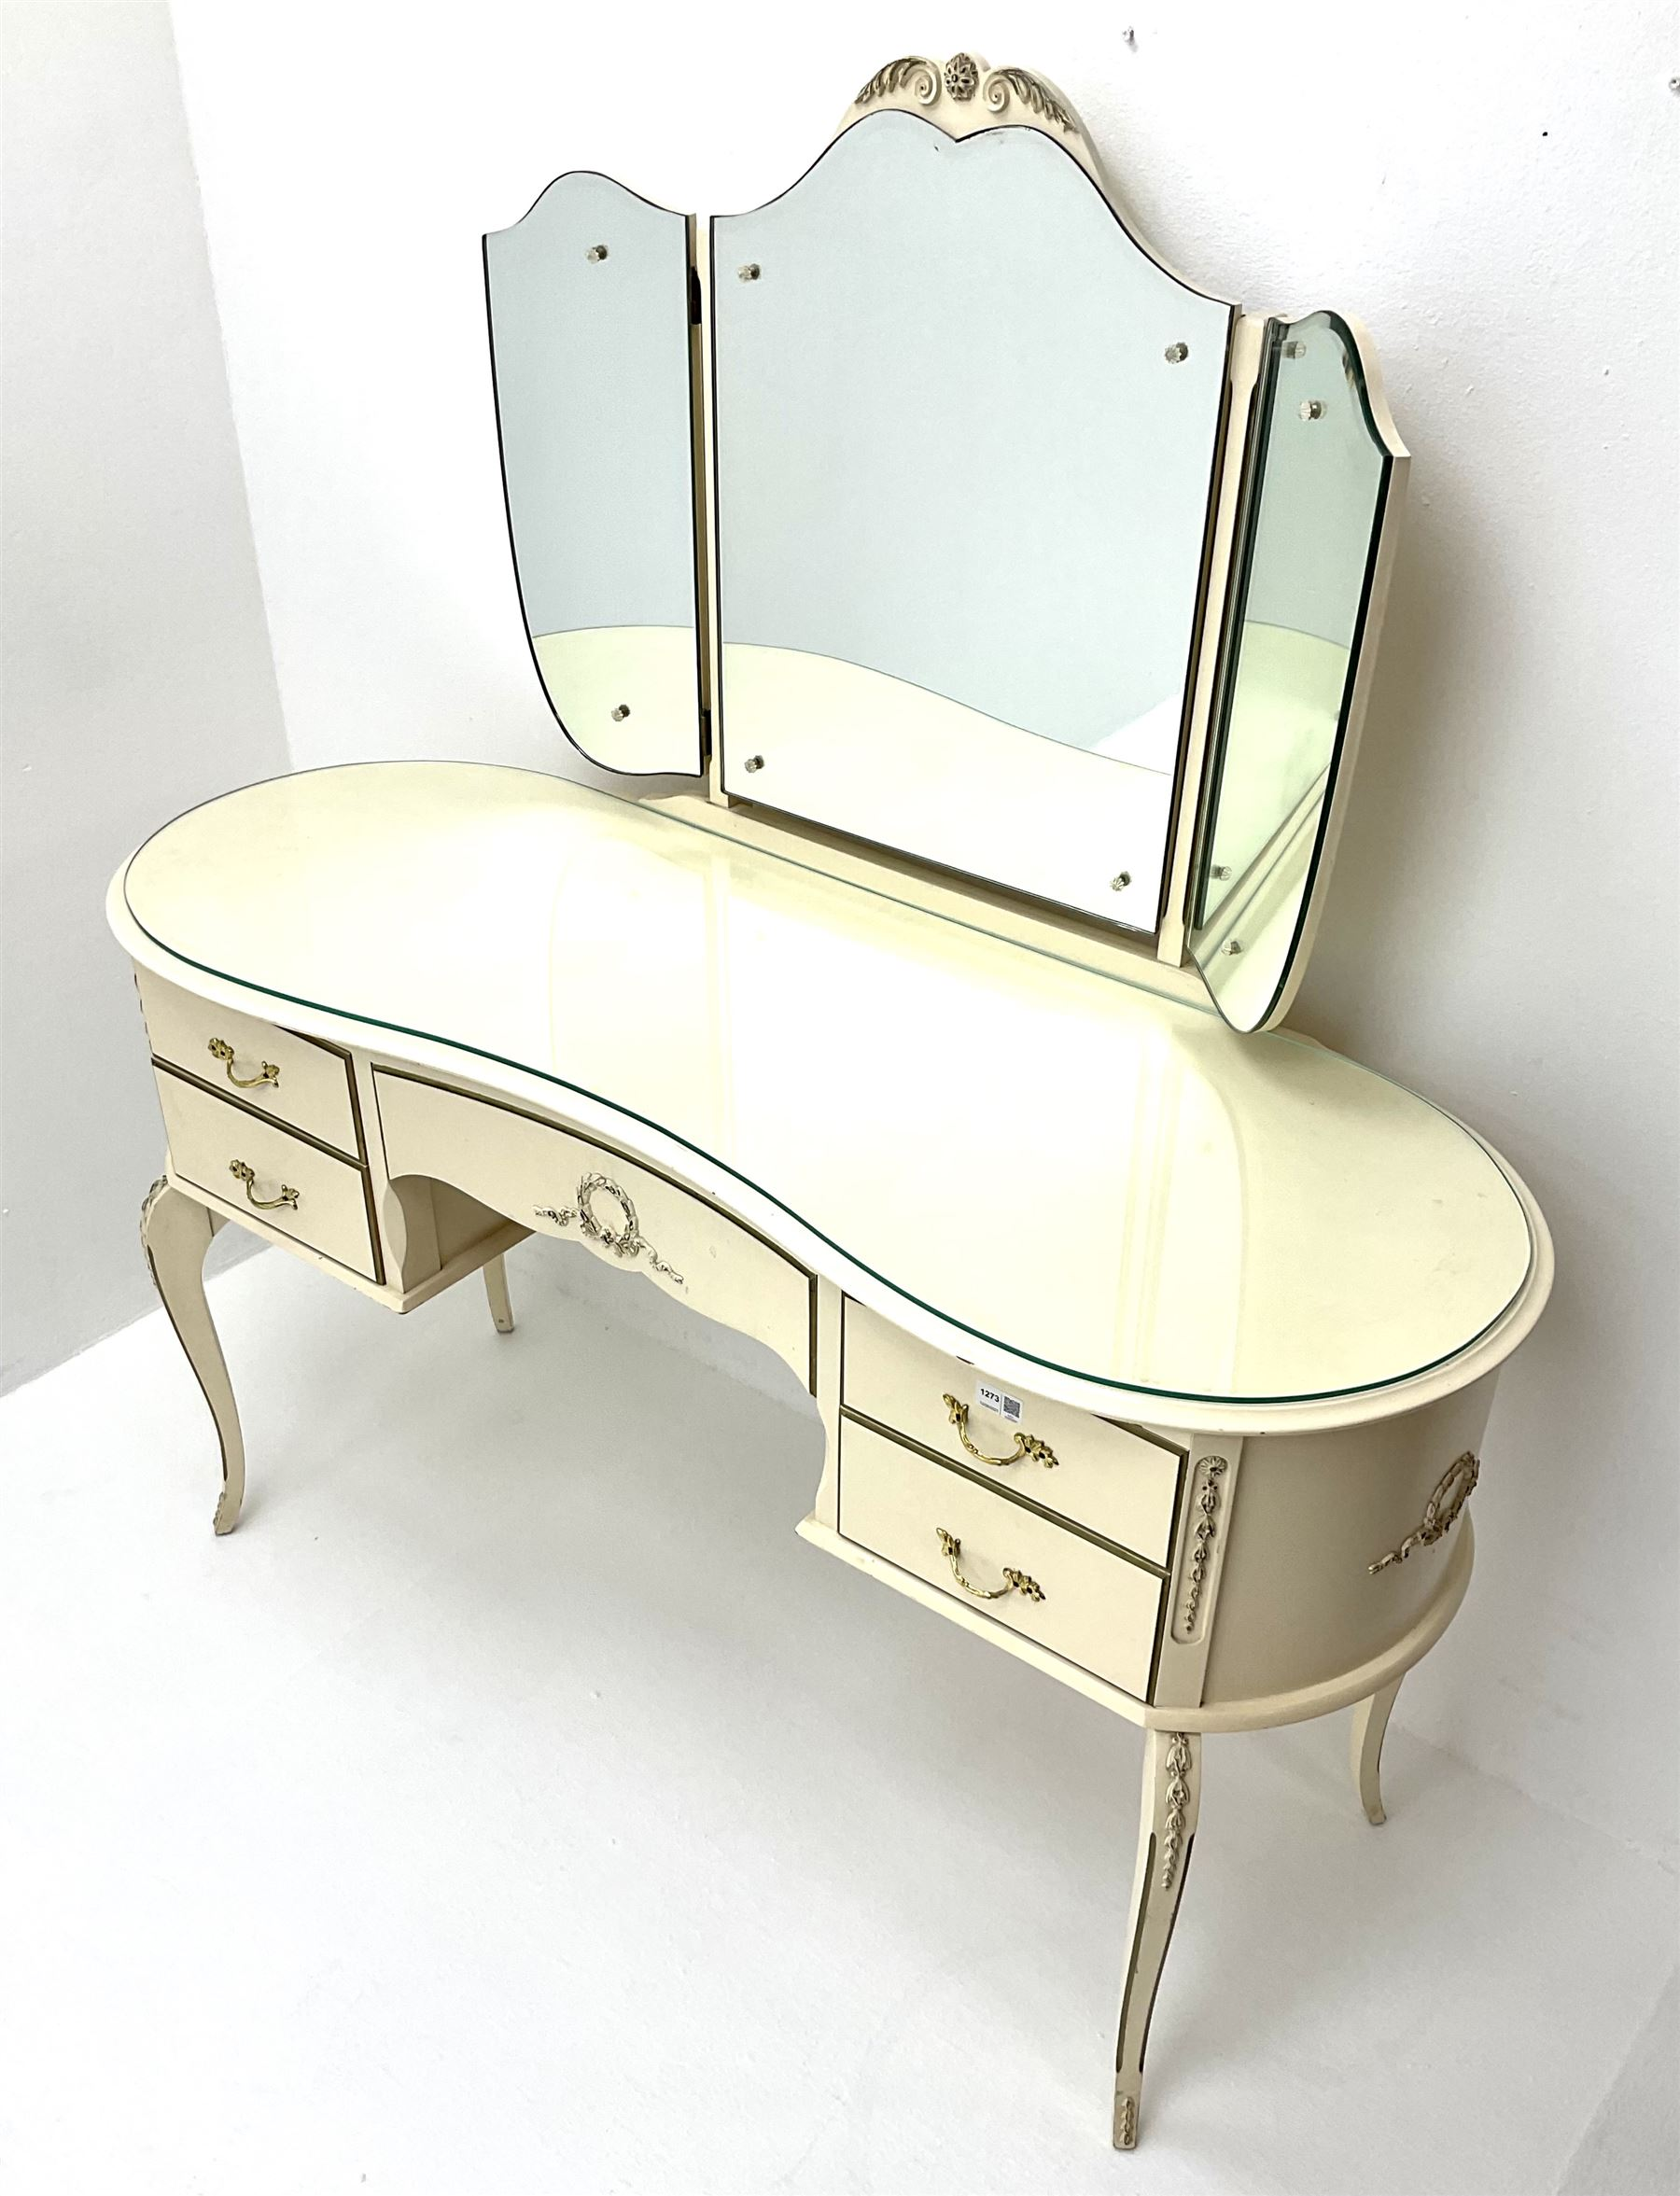 French style cream and gilt kidney shaped dressing table with Teri ole mirror - Image 3 of 3